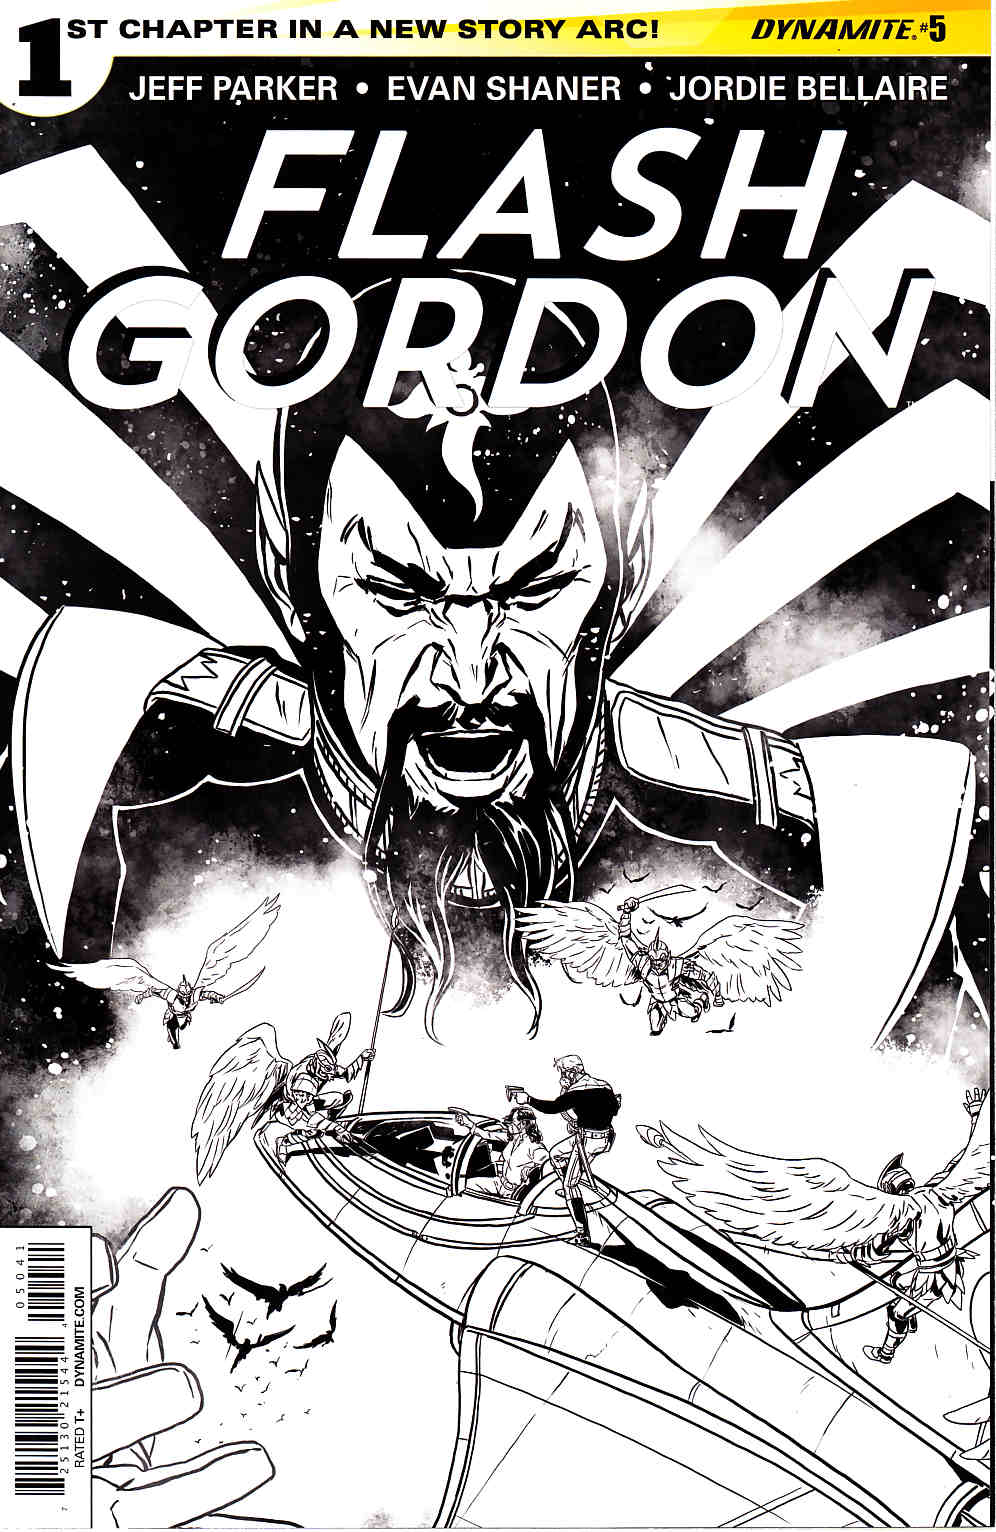 Flash Gordon #5 B&W Reorder Variant Cover [Comic] THUMBNAIL